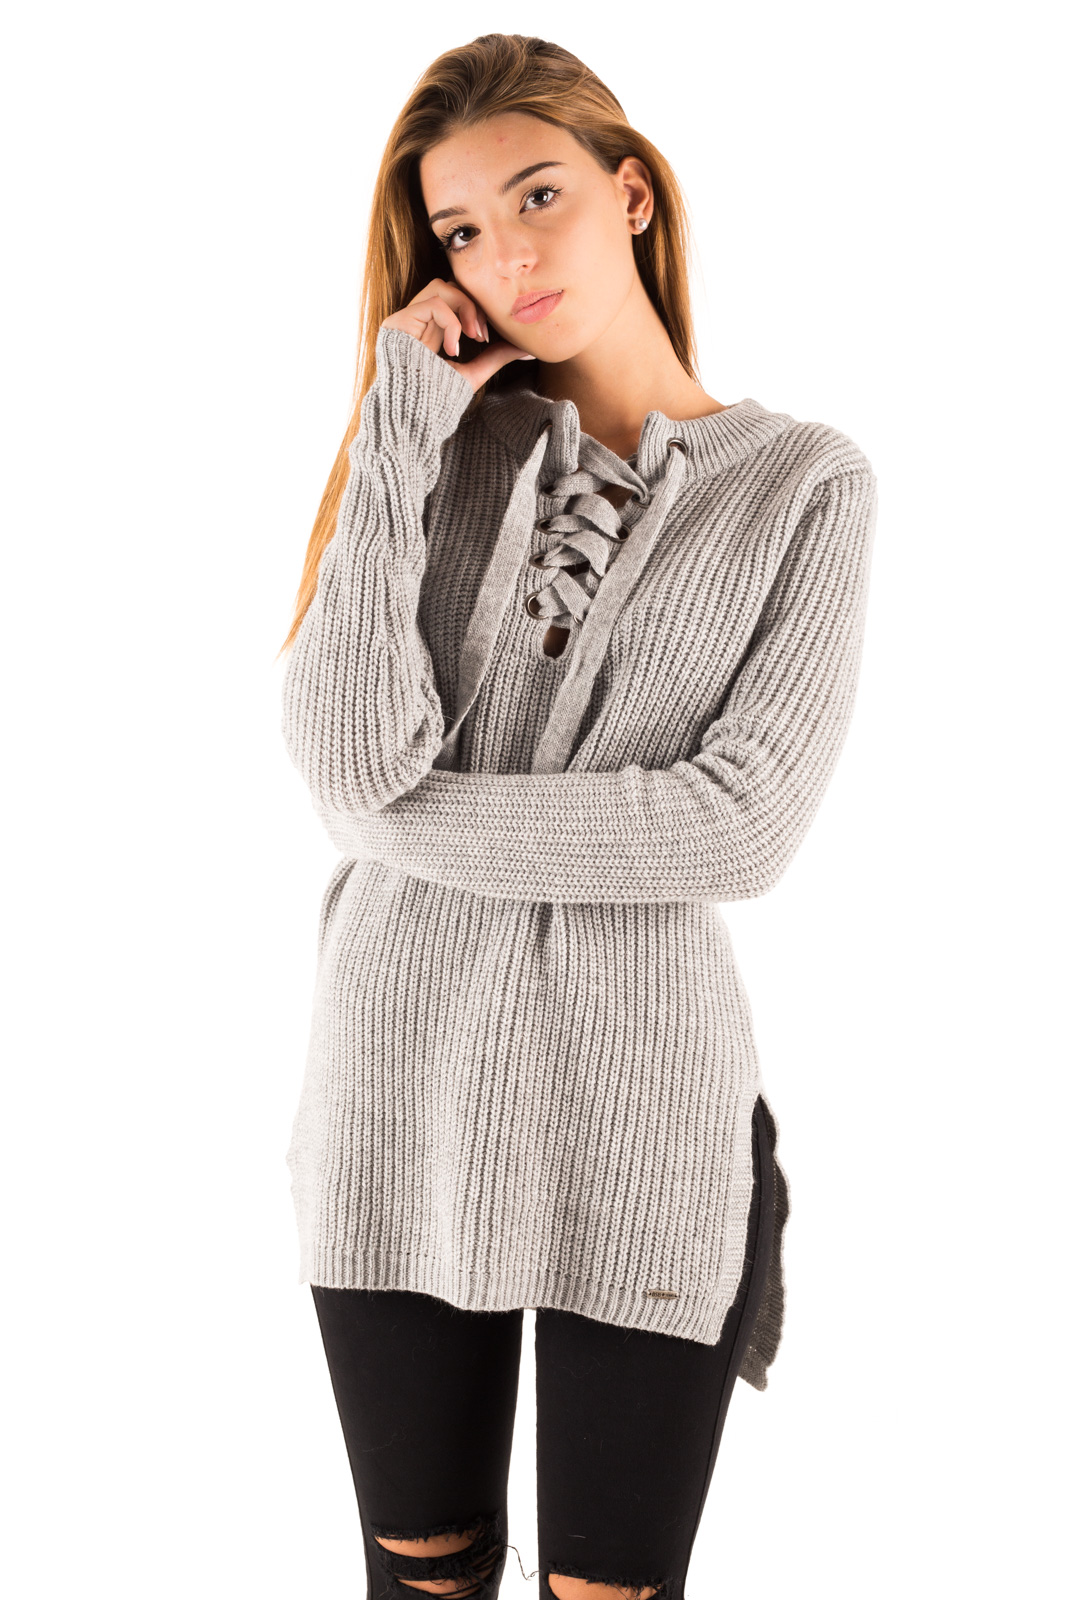 BSB - Sweater with gray plaid